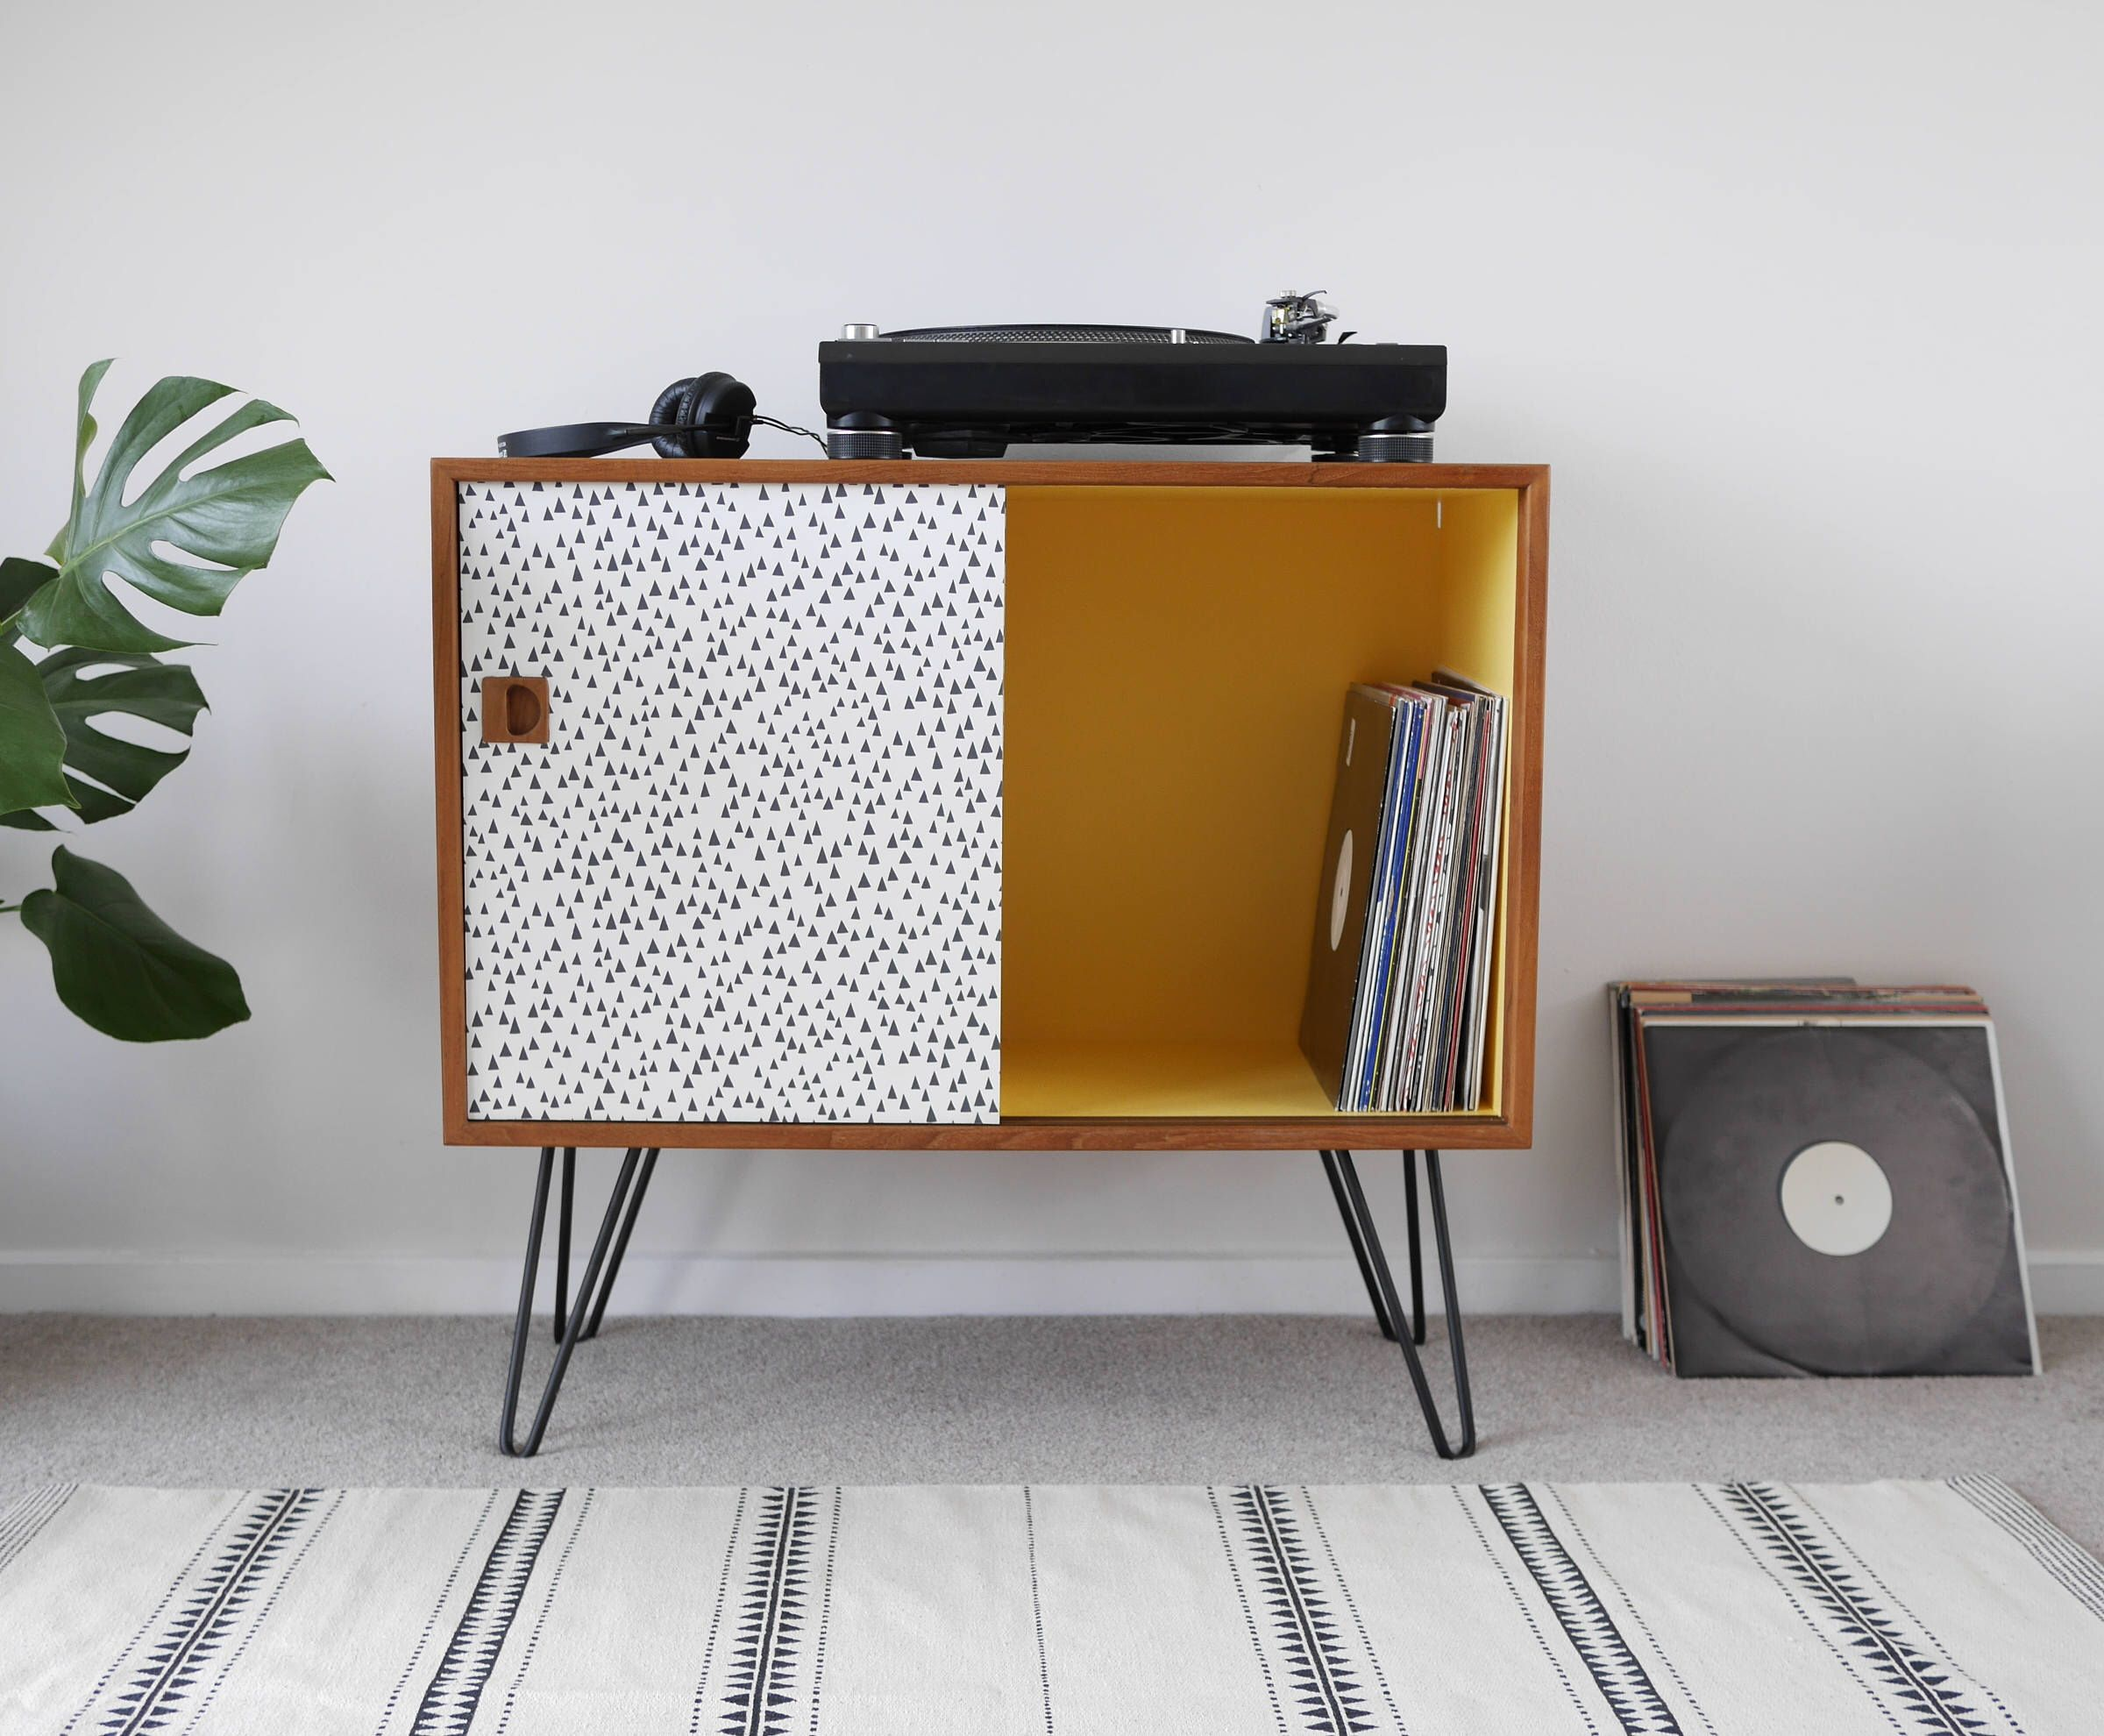 Triangle Print Cupboard for Vinyl Record Storage. Upcycled and Painted with Yellow Interior & Black HairPin Legs. Mid Century Vintage by ElizabethDotDesign on Etsy https://www.etsy.com/listing/531703496/triangle-print-cupboard-for-vinyl-record